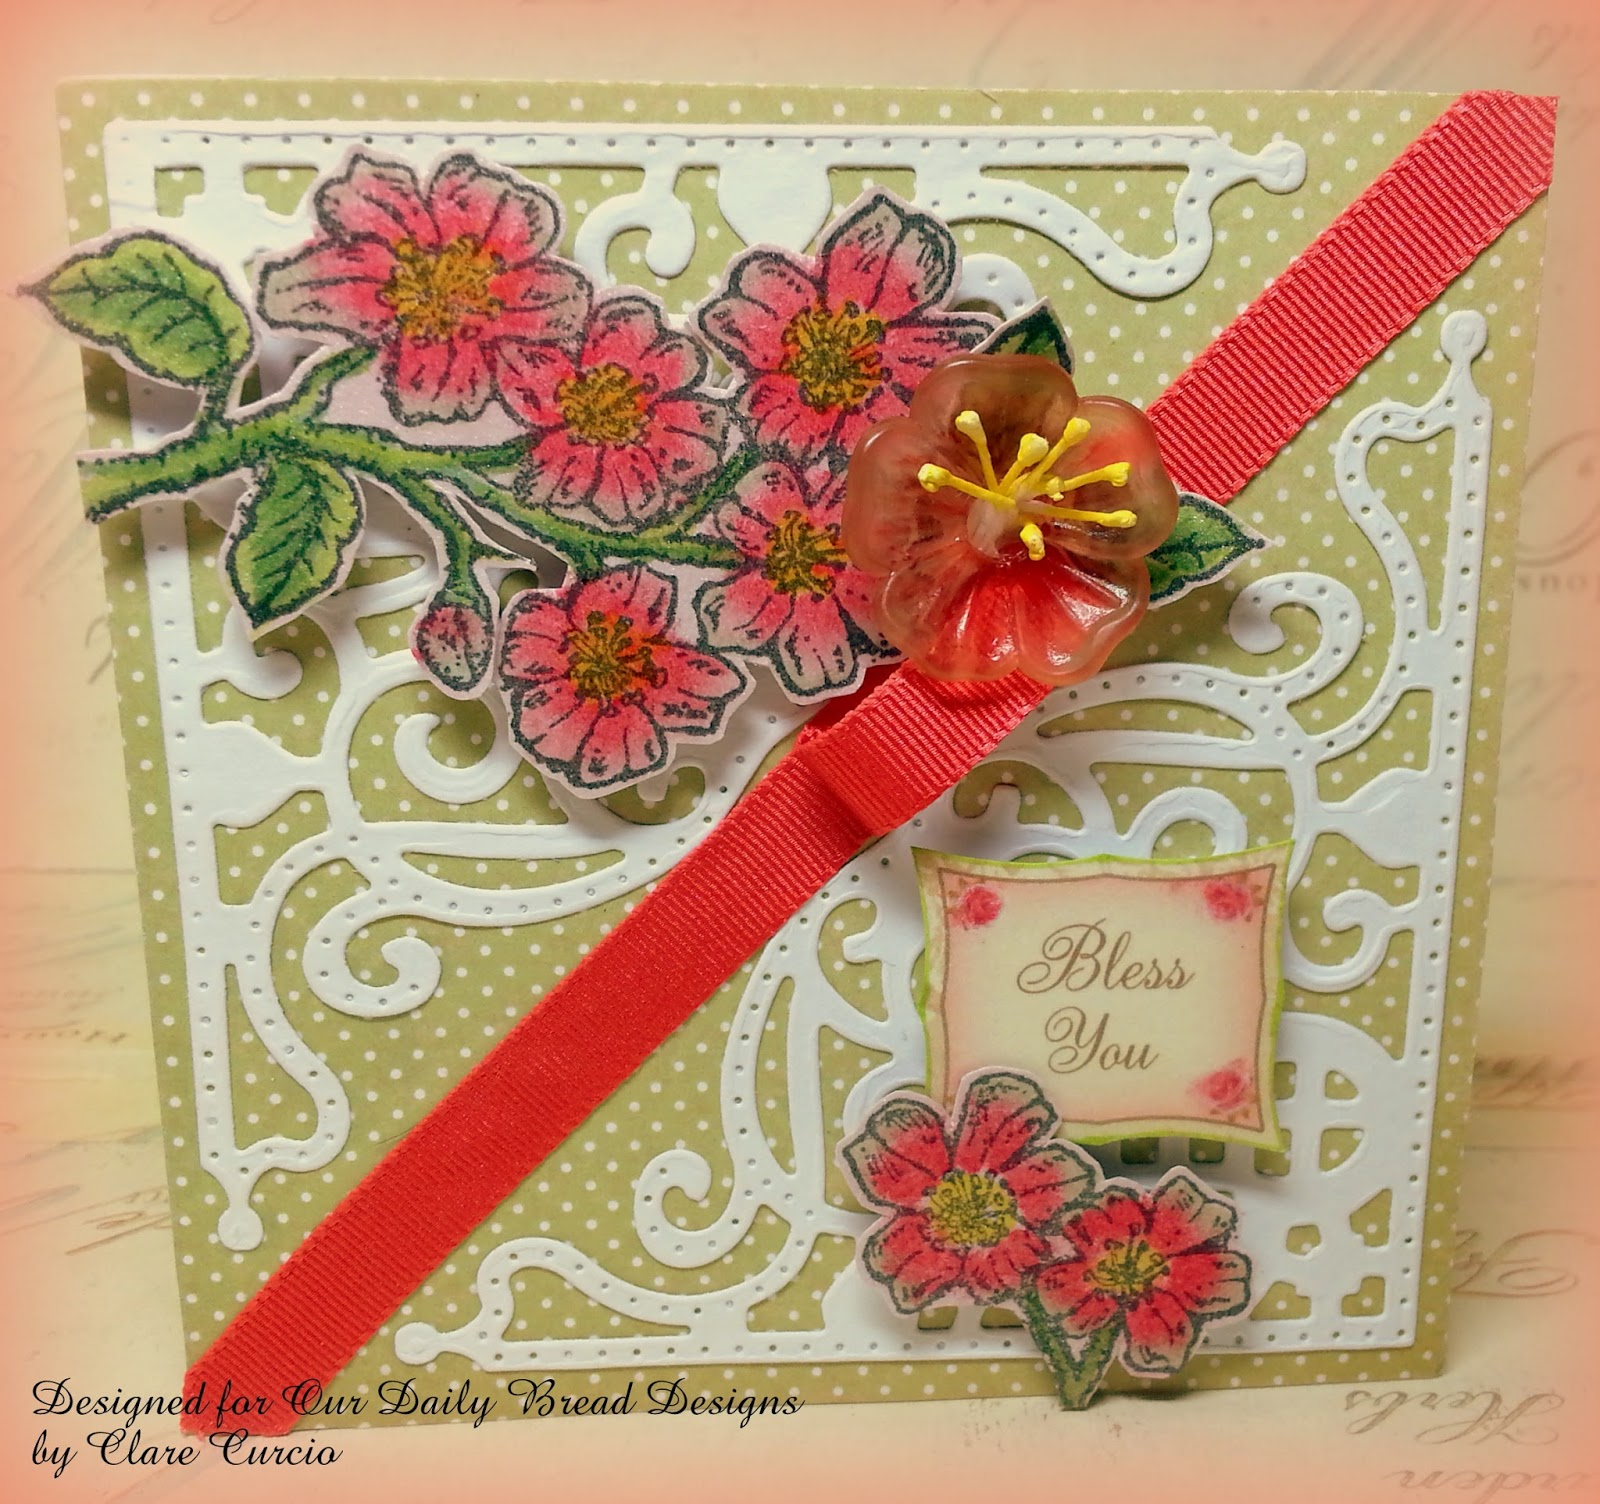 Stamps - Our Daily Bread Designs Cherry Blossom stamp set along with the ODBD Custom Decorative Corners Dies and ODBD Blushing Rose Paper Collection.